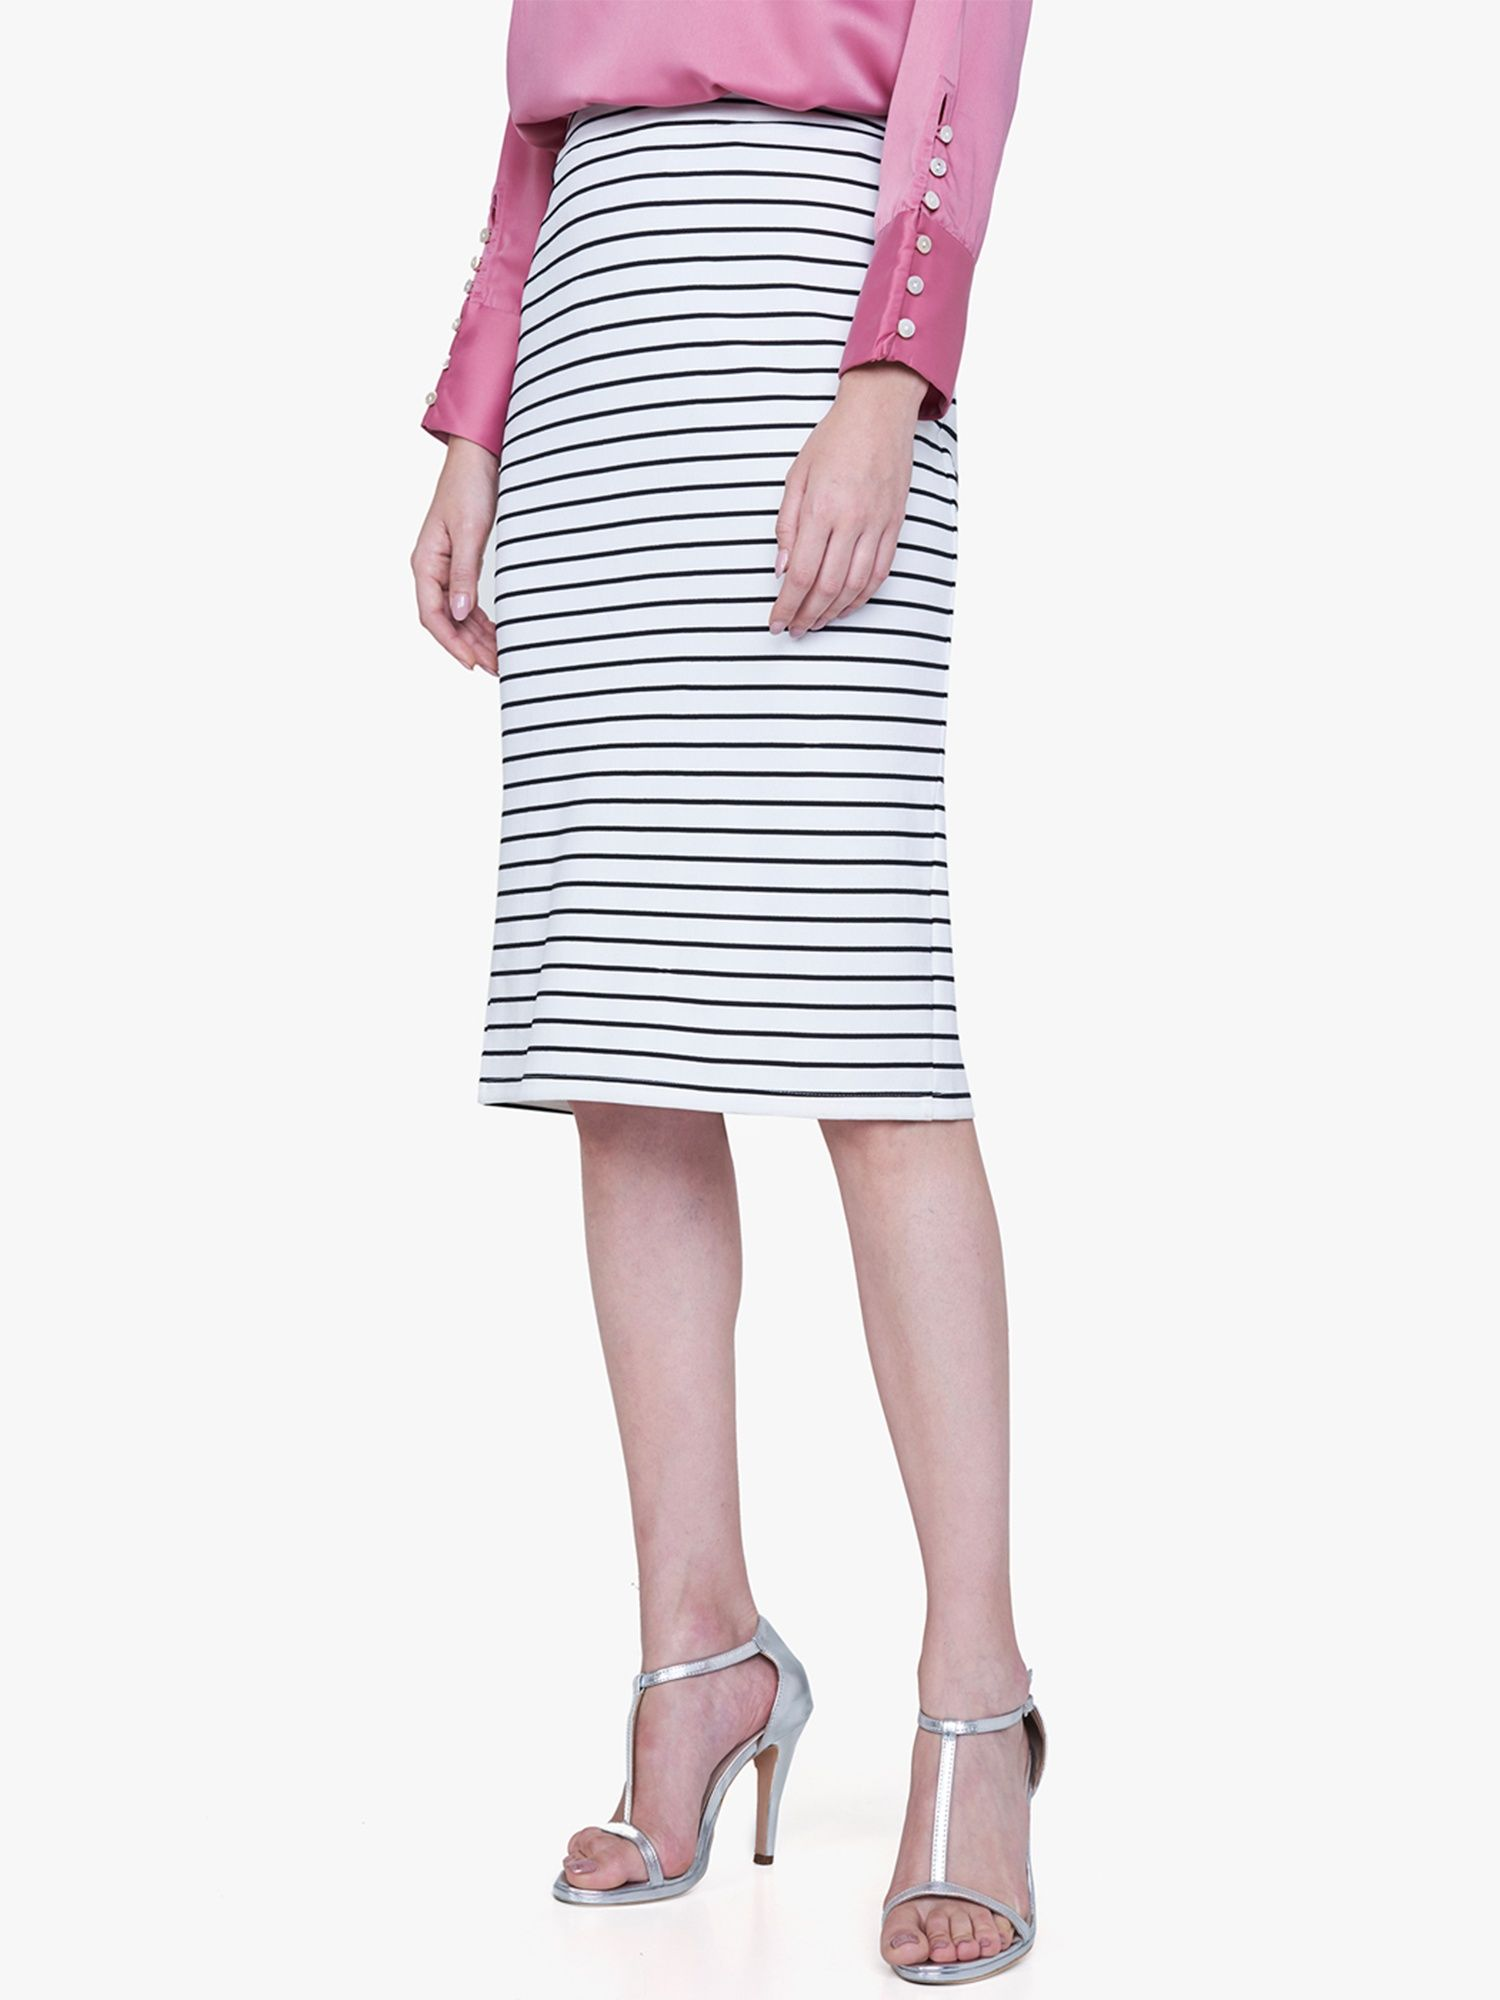 cef1ae7f4 AND Skirts : Buy AND Black & White Nautical Striped Pencil Skirt ...